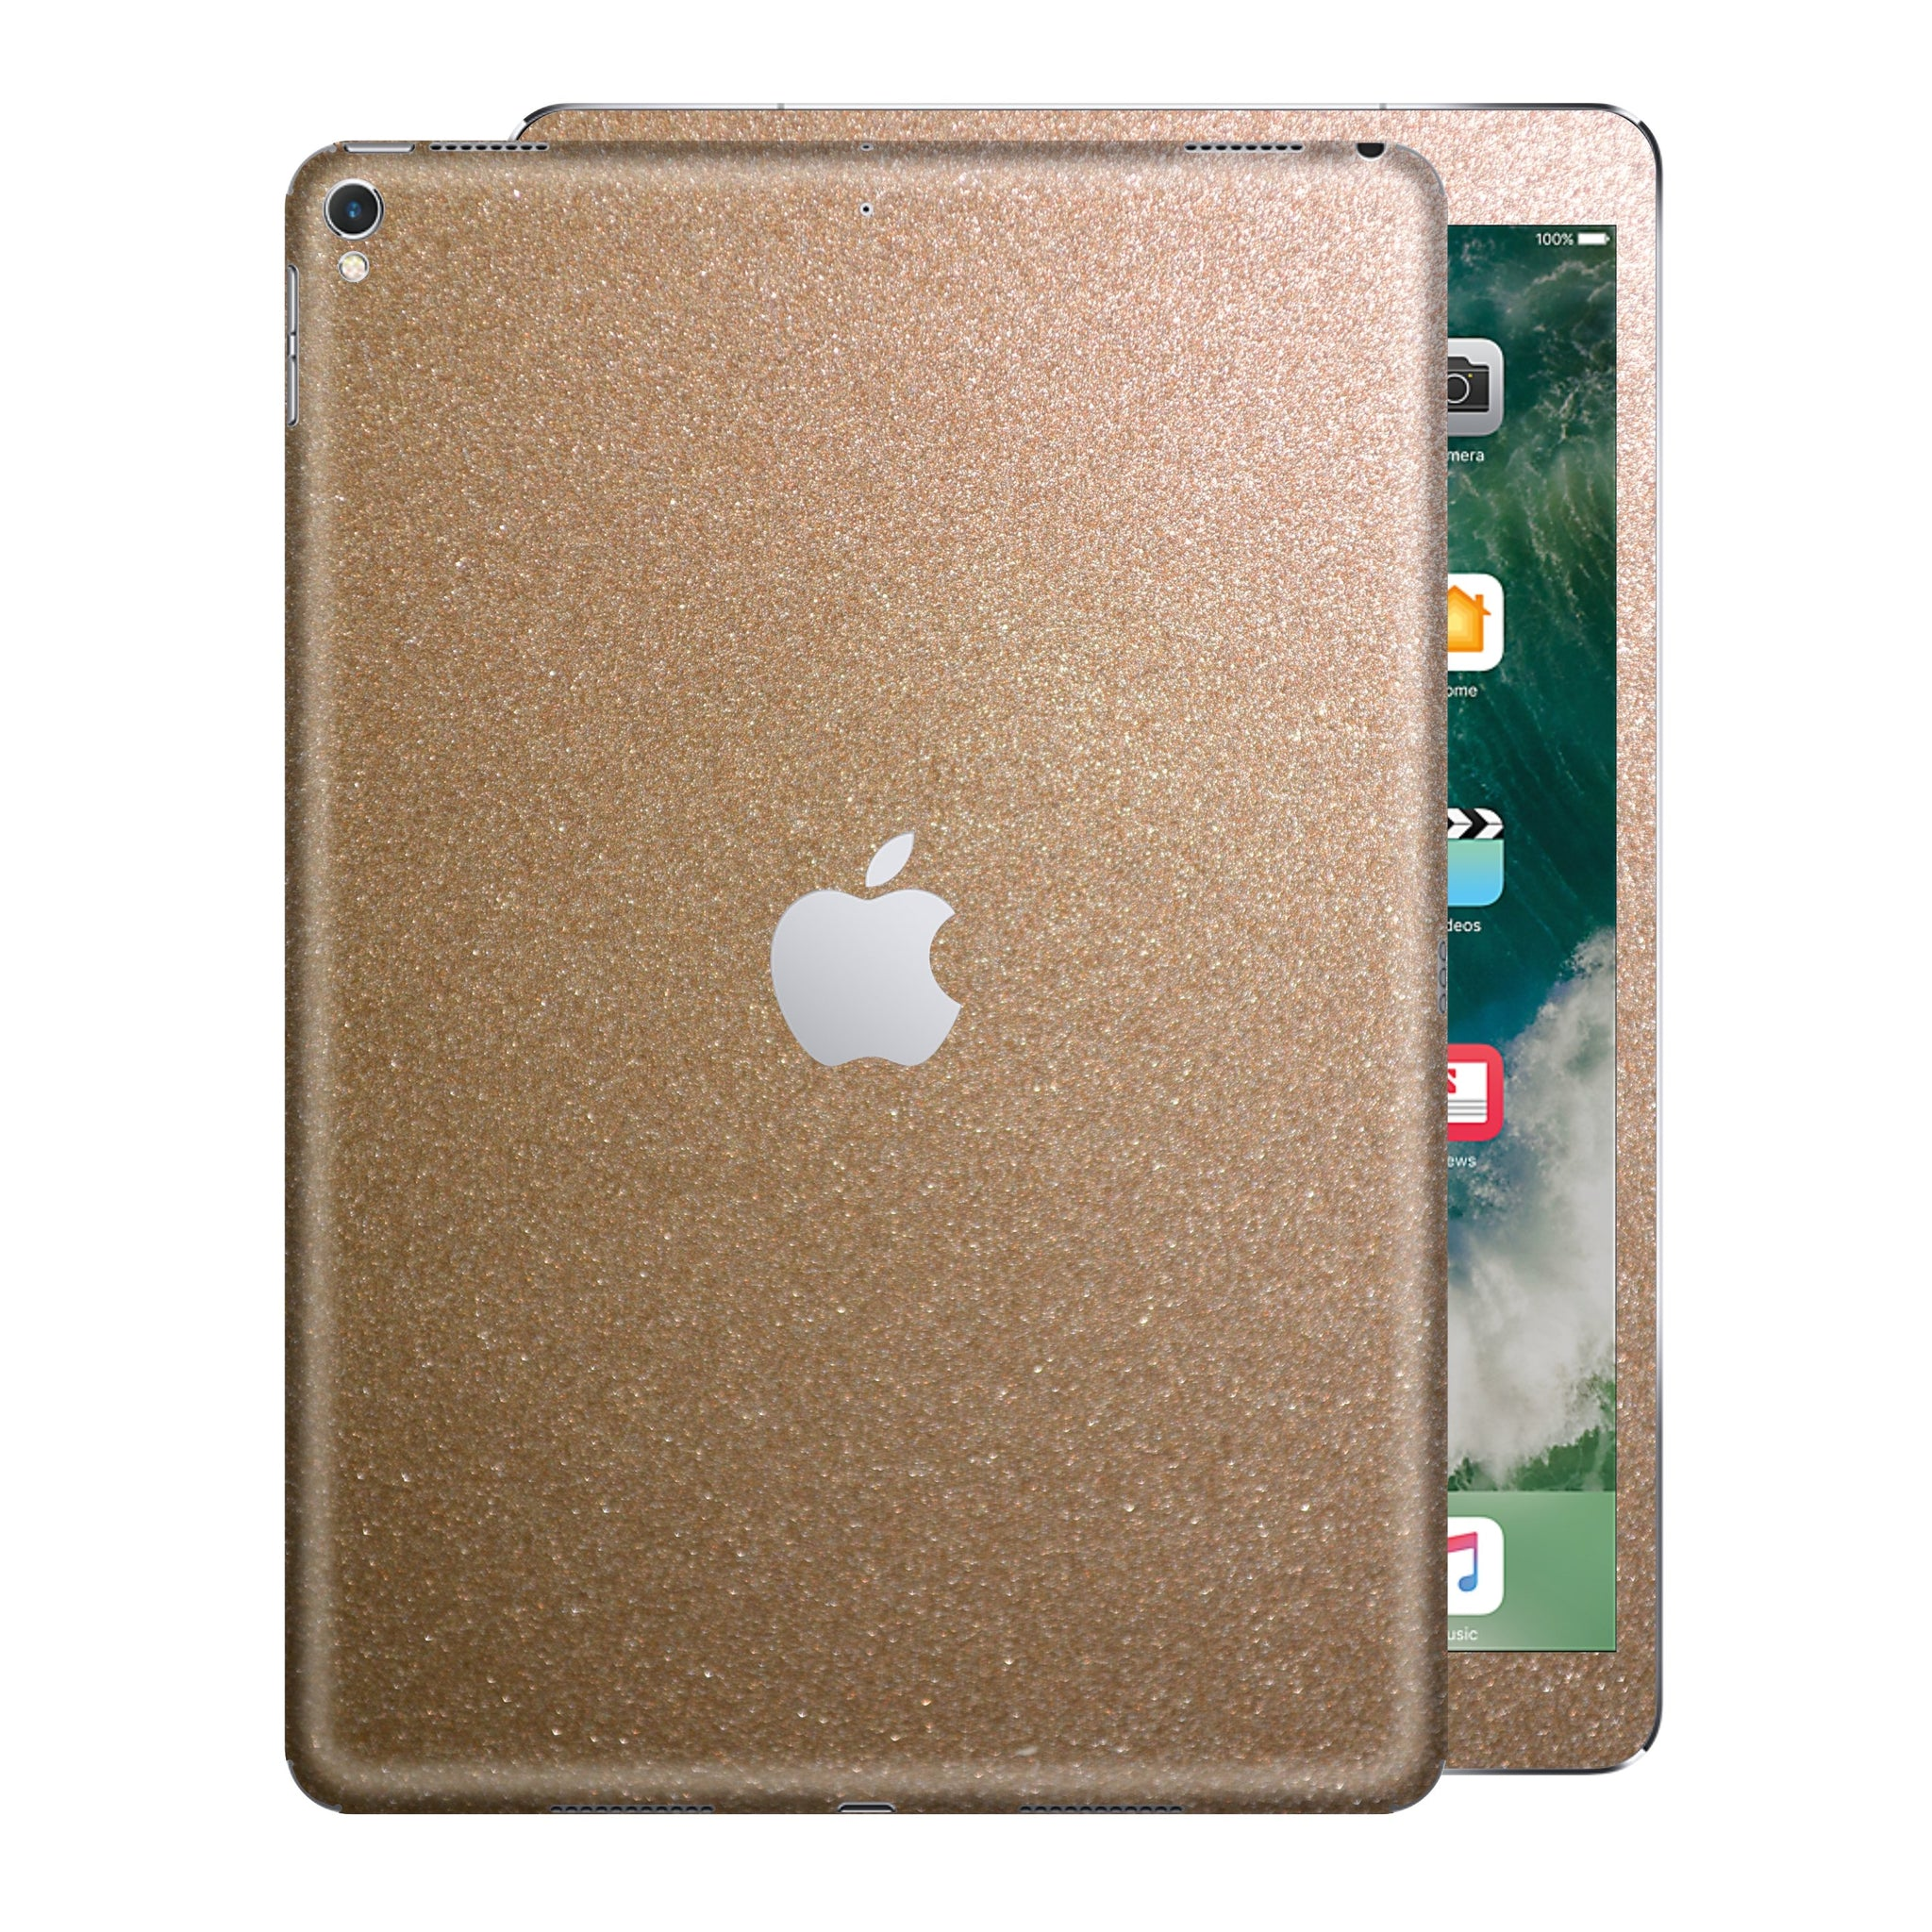 iPad PRO 10.5 inch 2017 Glossy Bronze Antique Metallic Skin Wrap Sticker Decal Cover Protector by EasySkinz